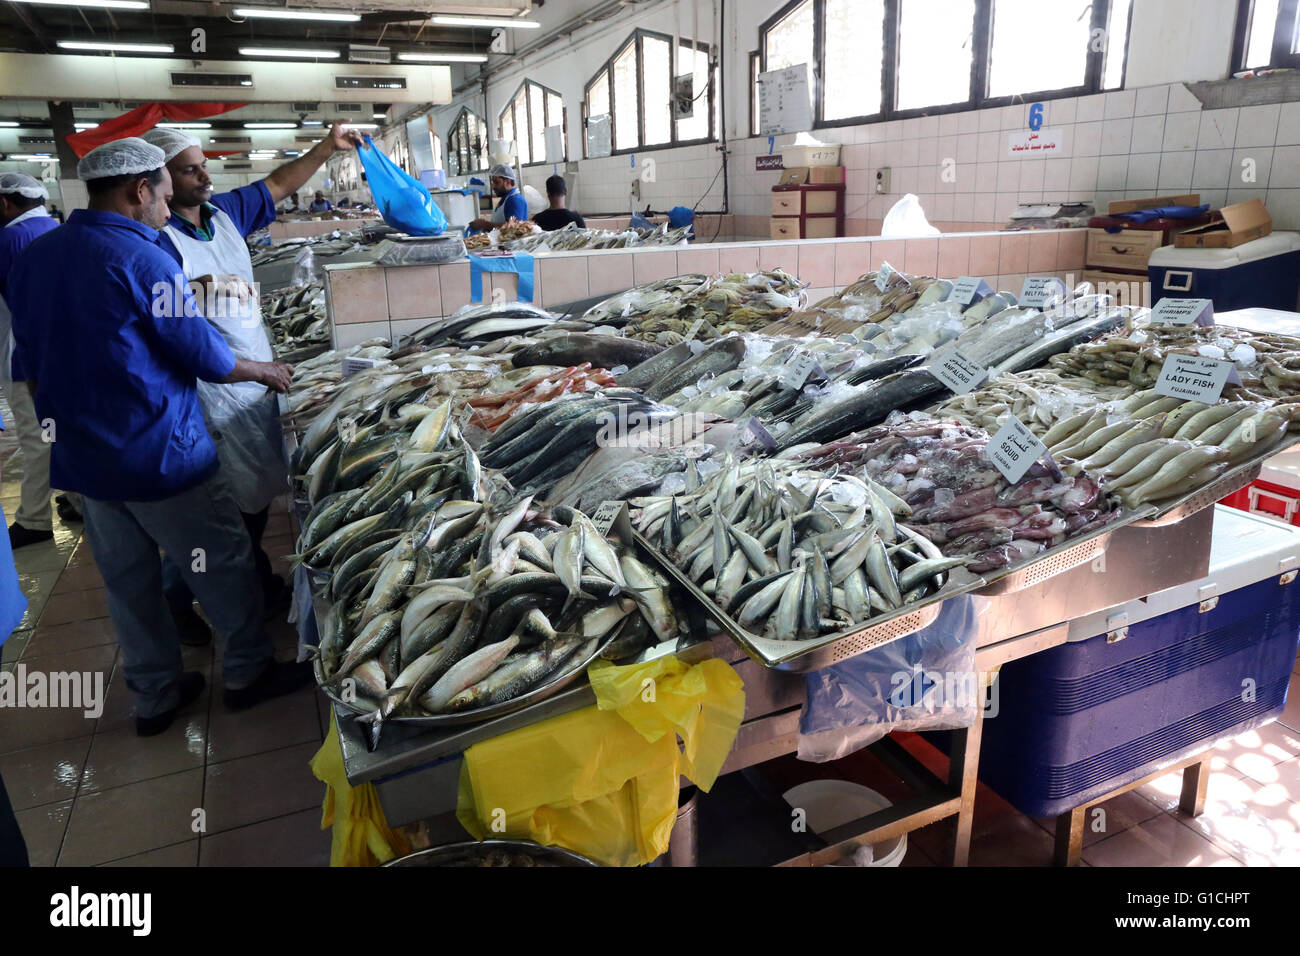 Abu Dhabi Fish Market Stock Photos & Abu Dhabi Fish Market Stock